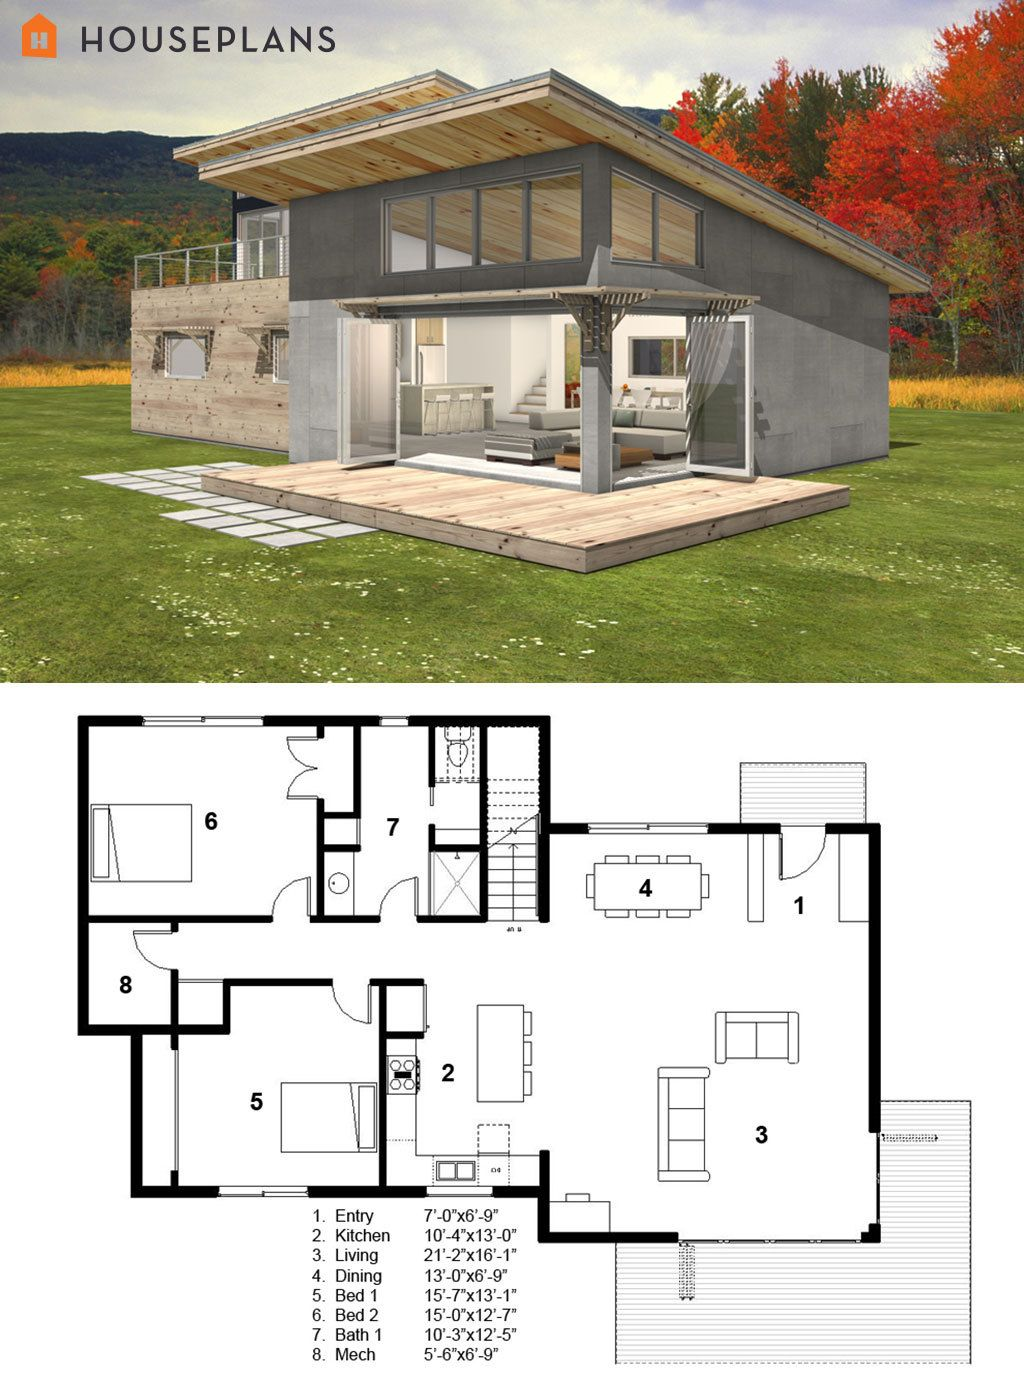 Modern style house plan 3 beds baths 2115 sq ft for Modern house holiday lets